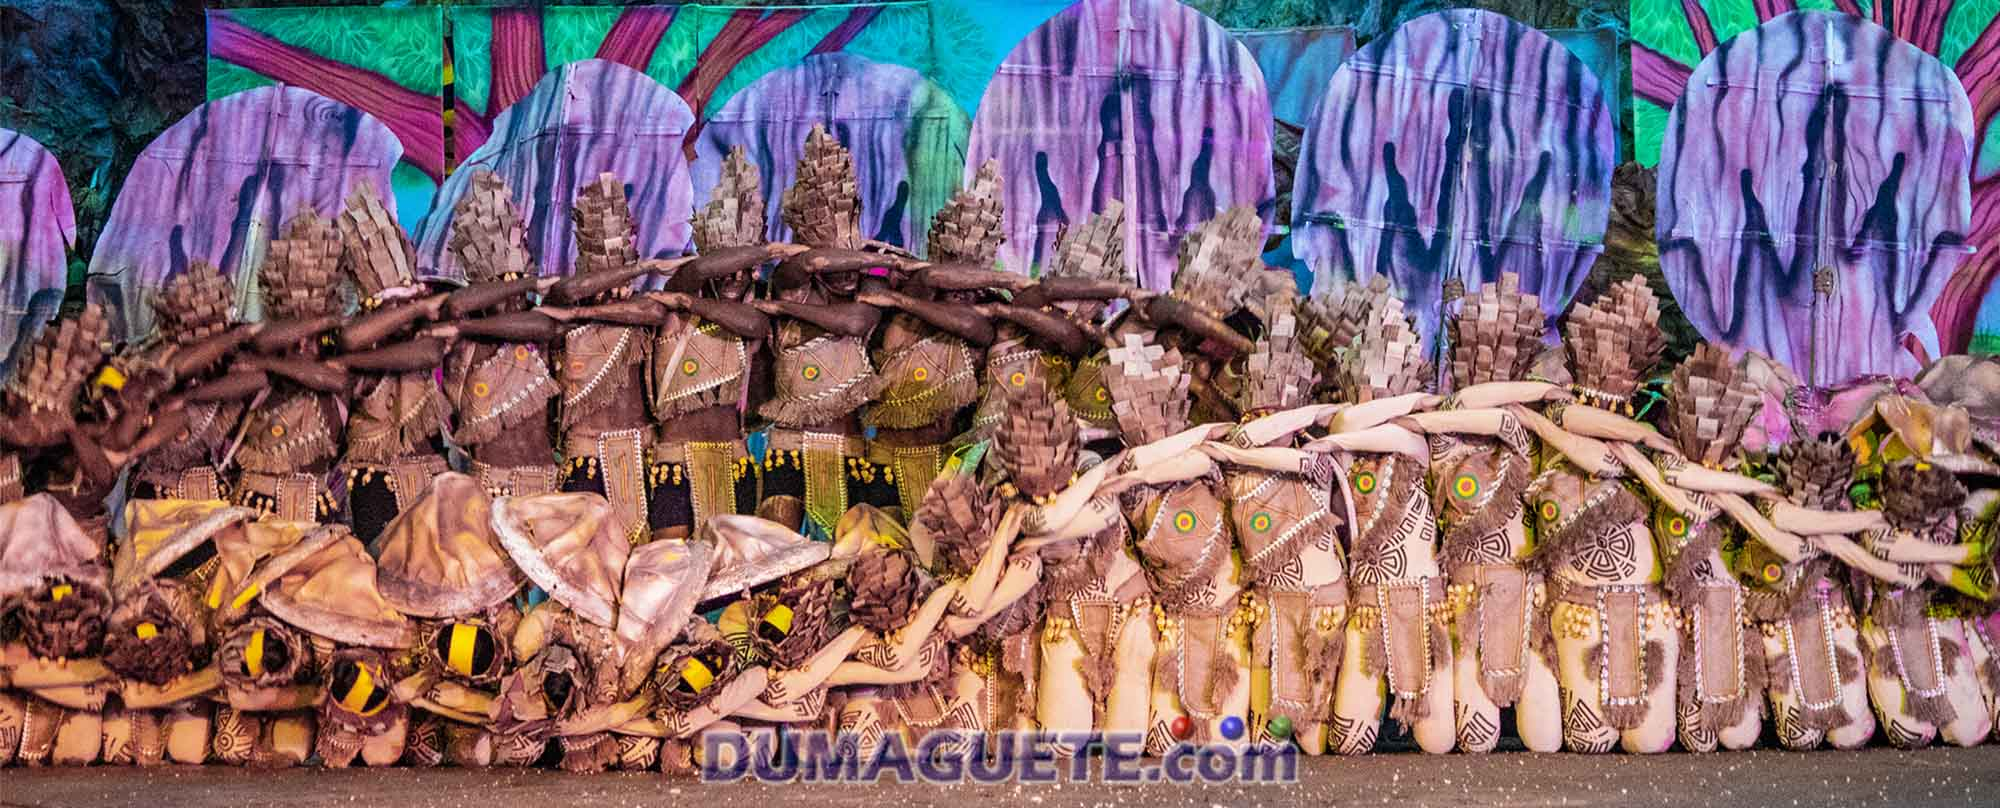 Langub Festival 2019 - Mabinay - Showdown